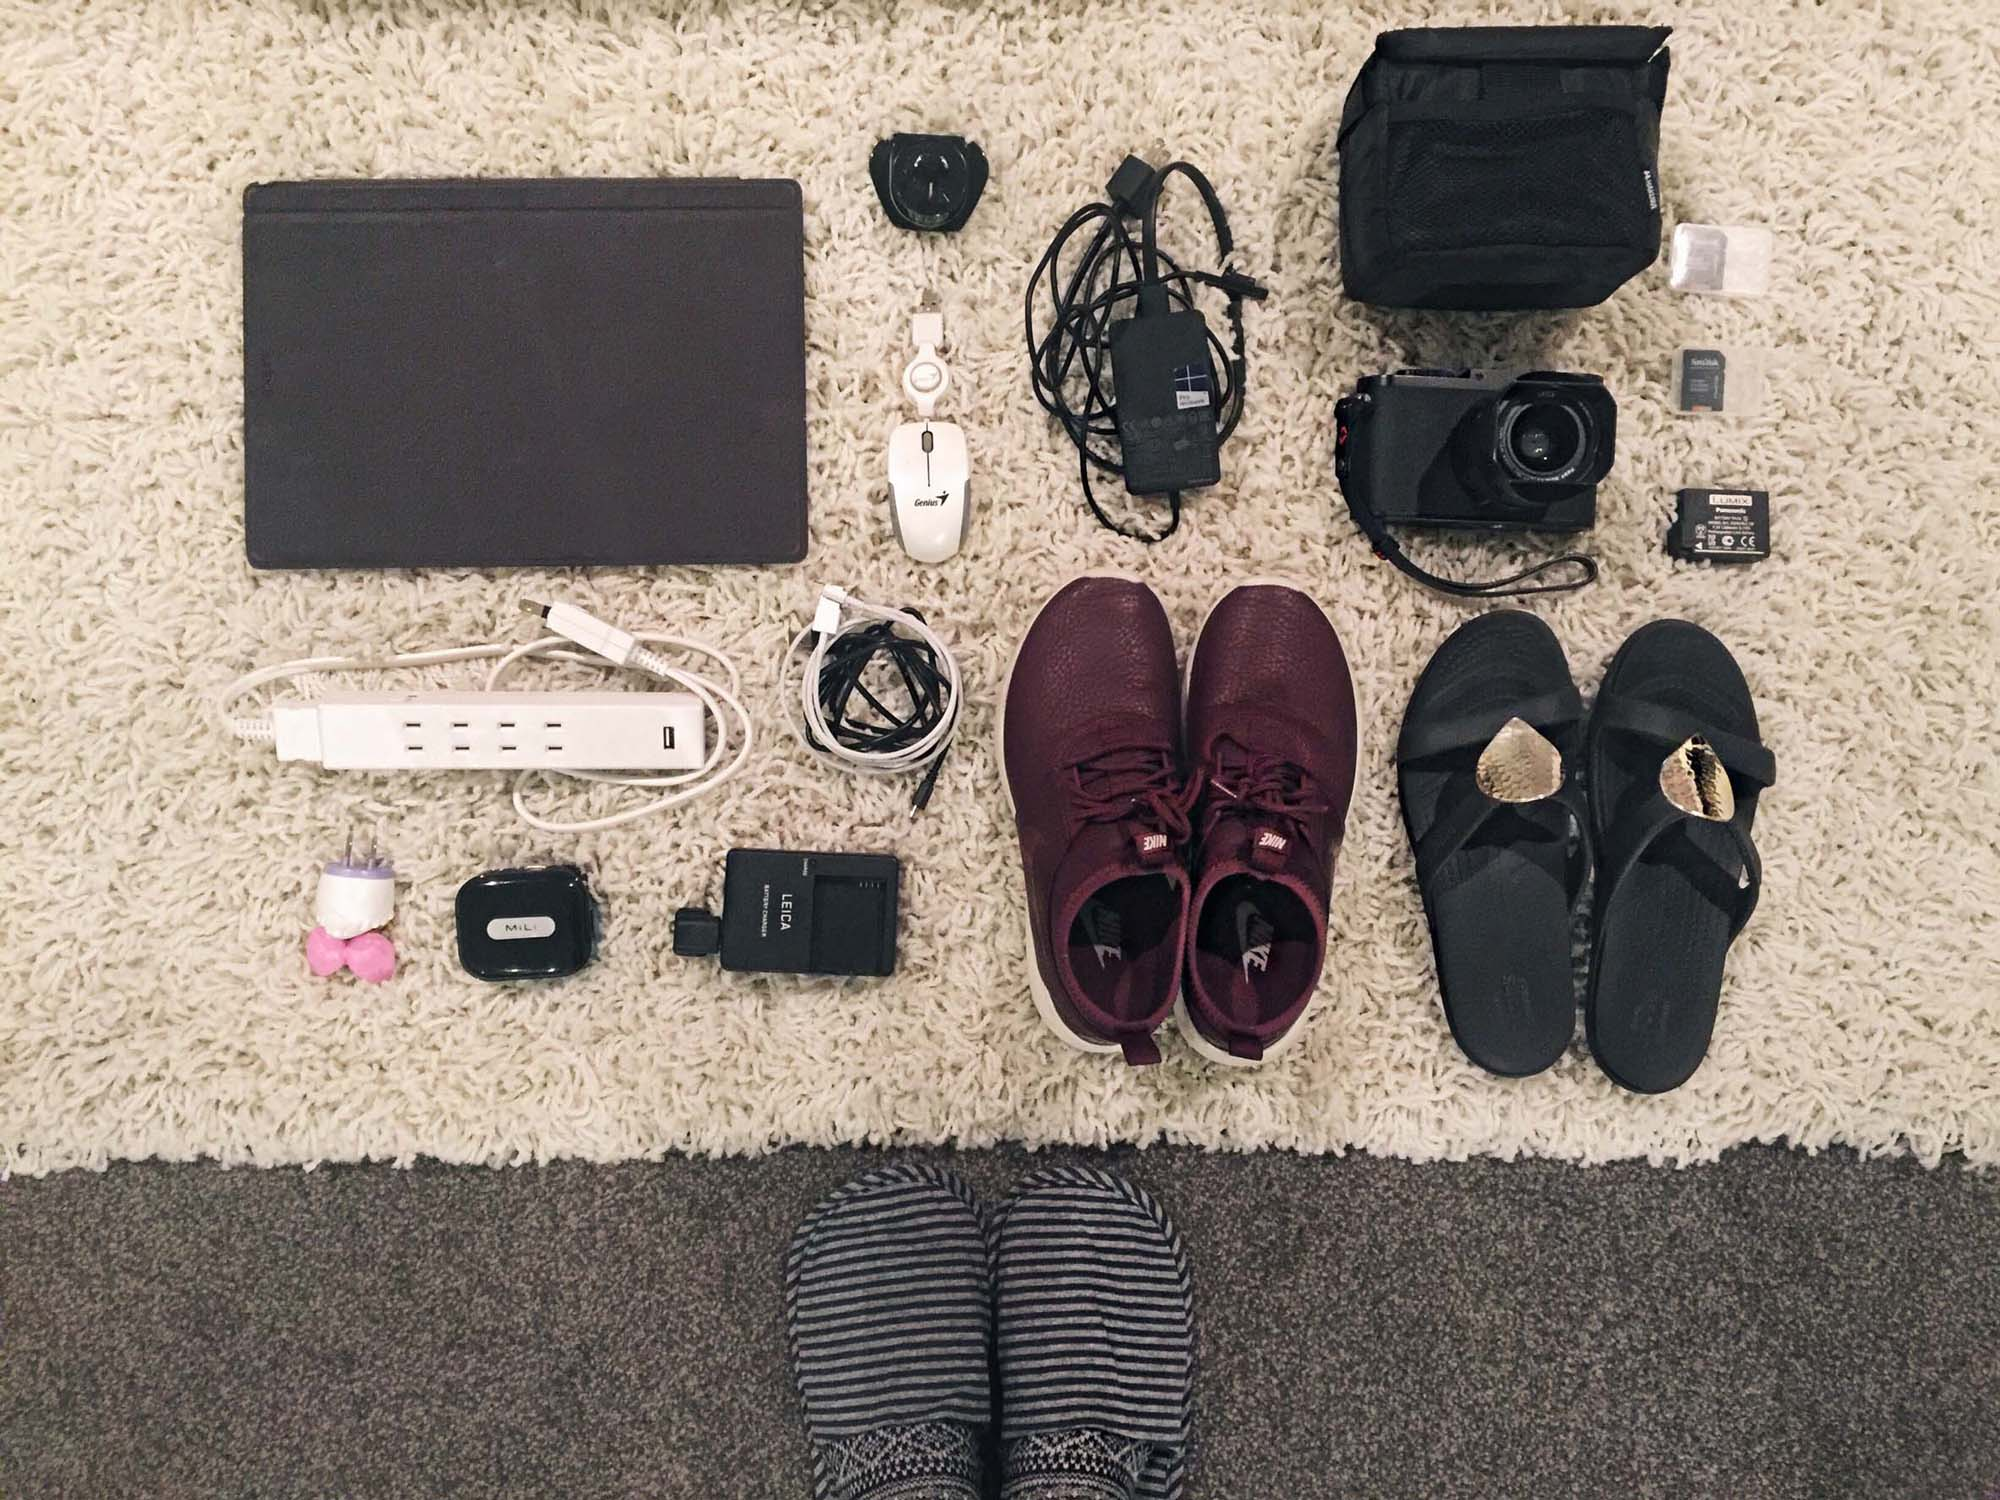 shoes and gadgets.jpg